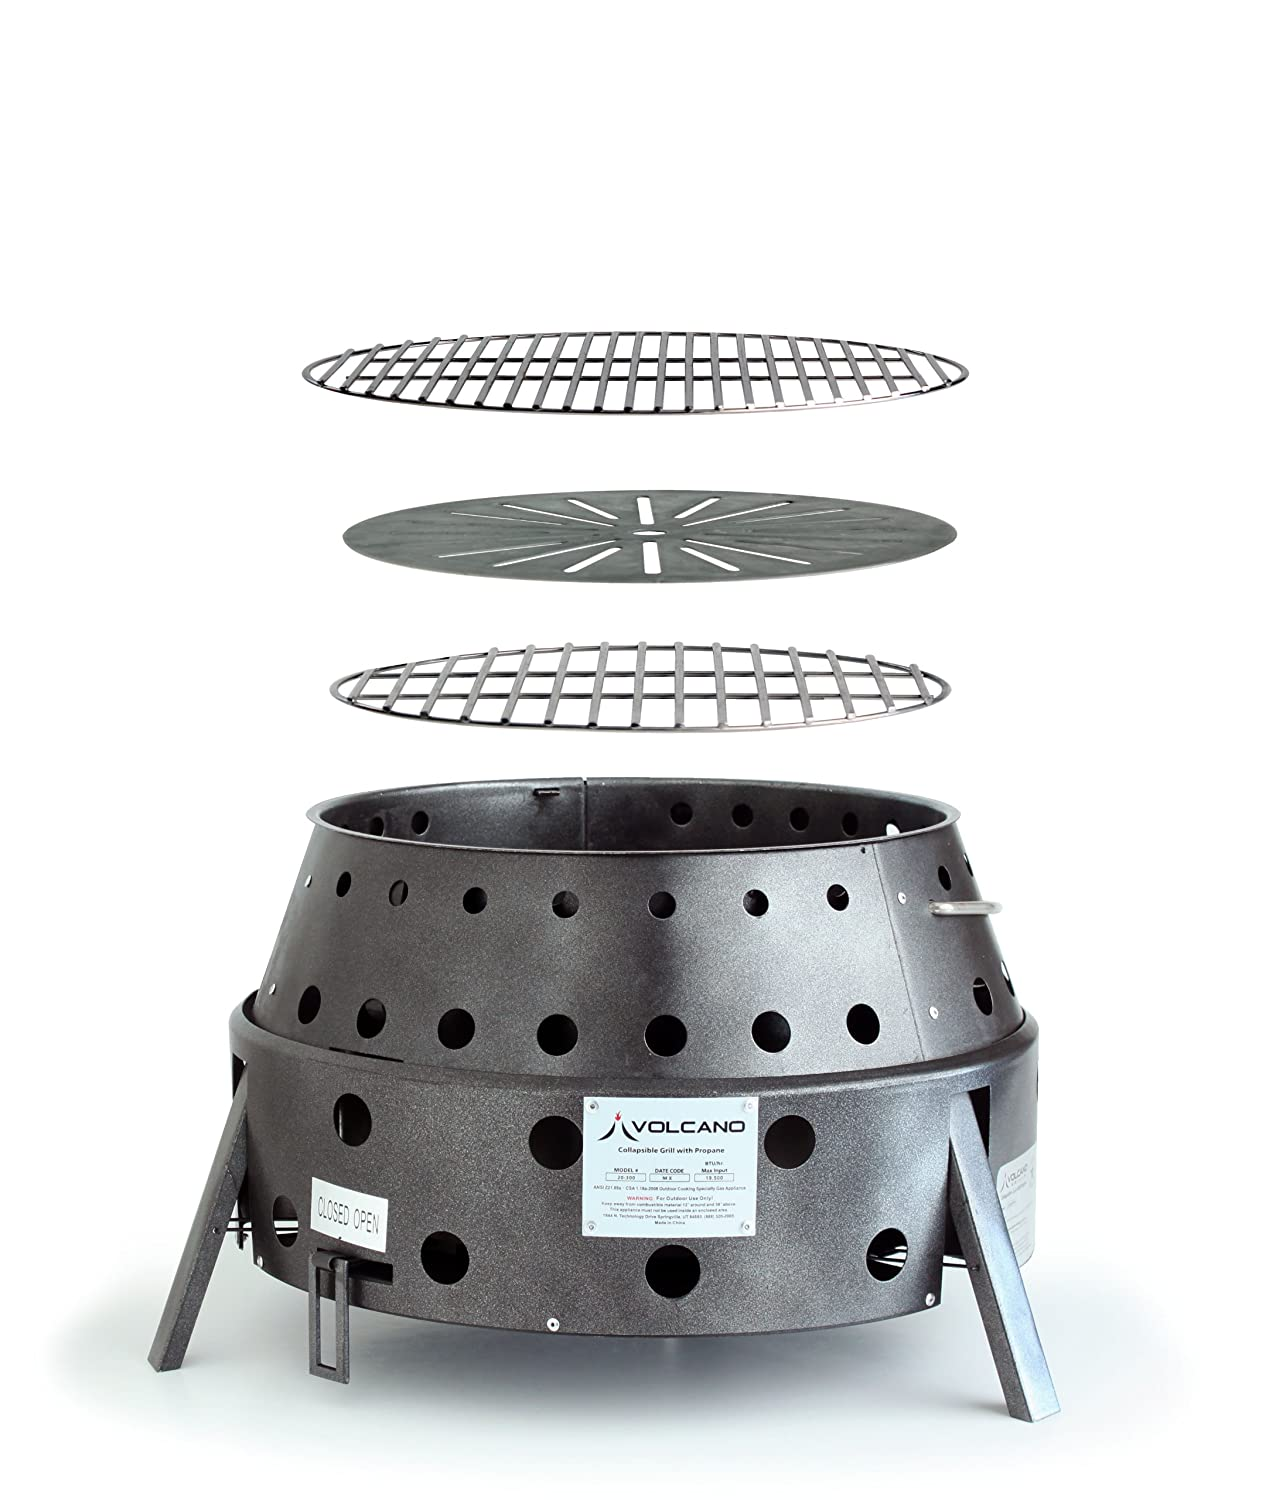 Volcano Grills 2 Fuel Charcoal Wood Collapsible Stove